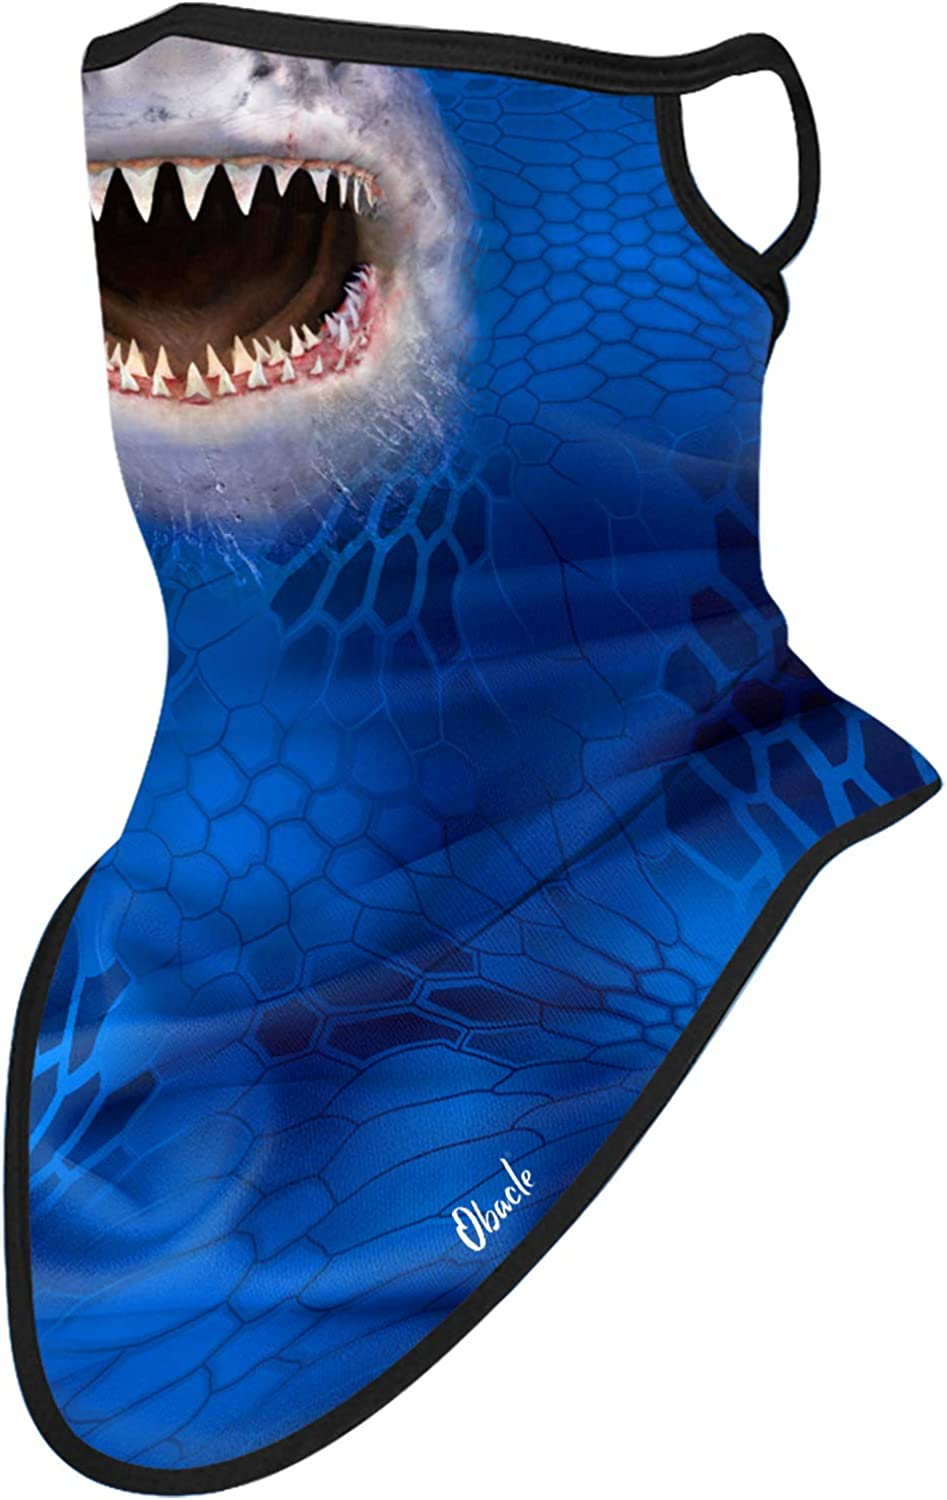 Obacle Bandana Face Mask with Ear Loops Neck Gaiter Face Mask Scarf Face Cover for Men Women